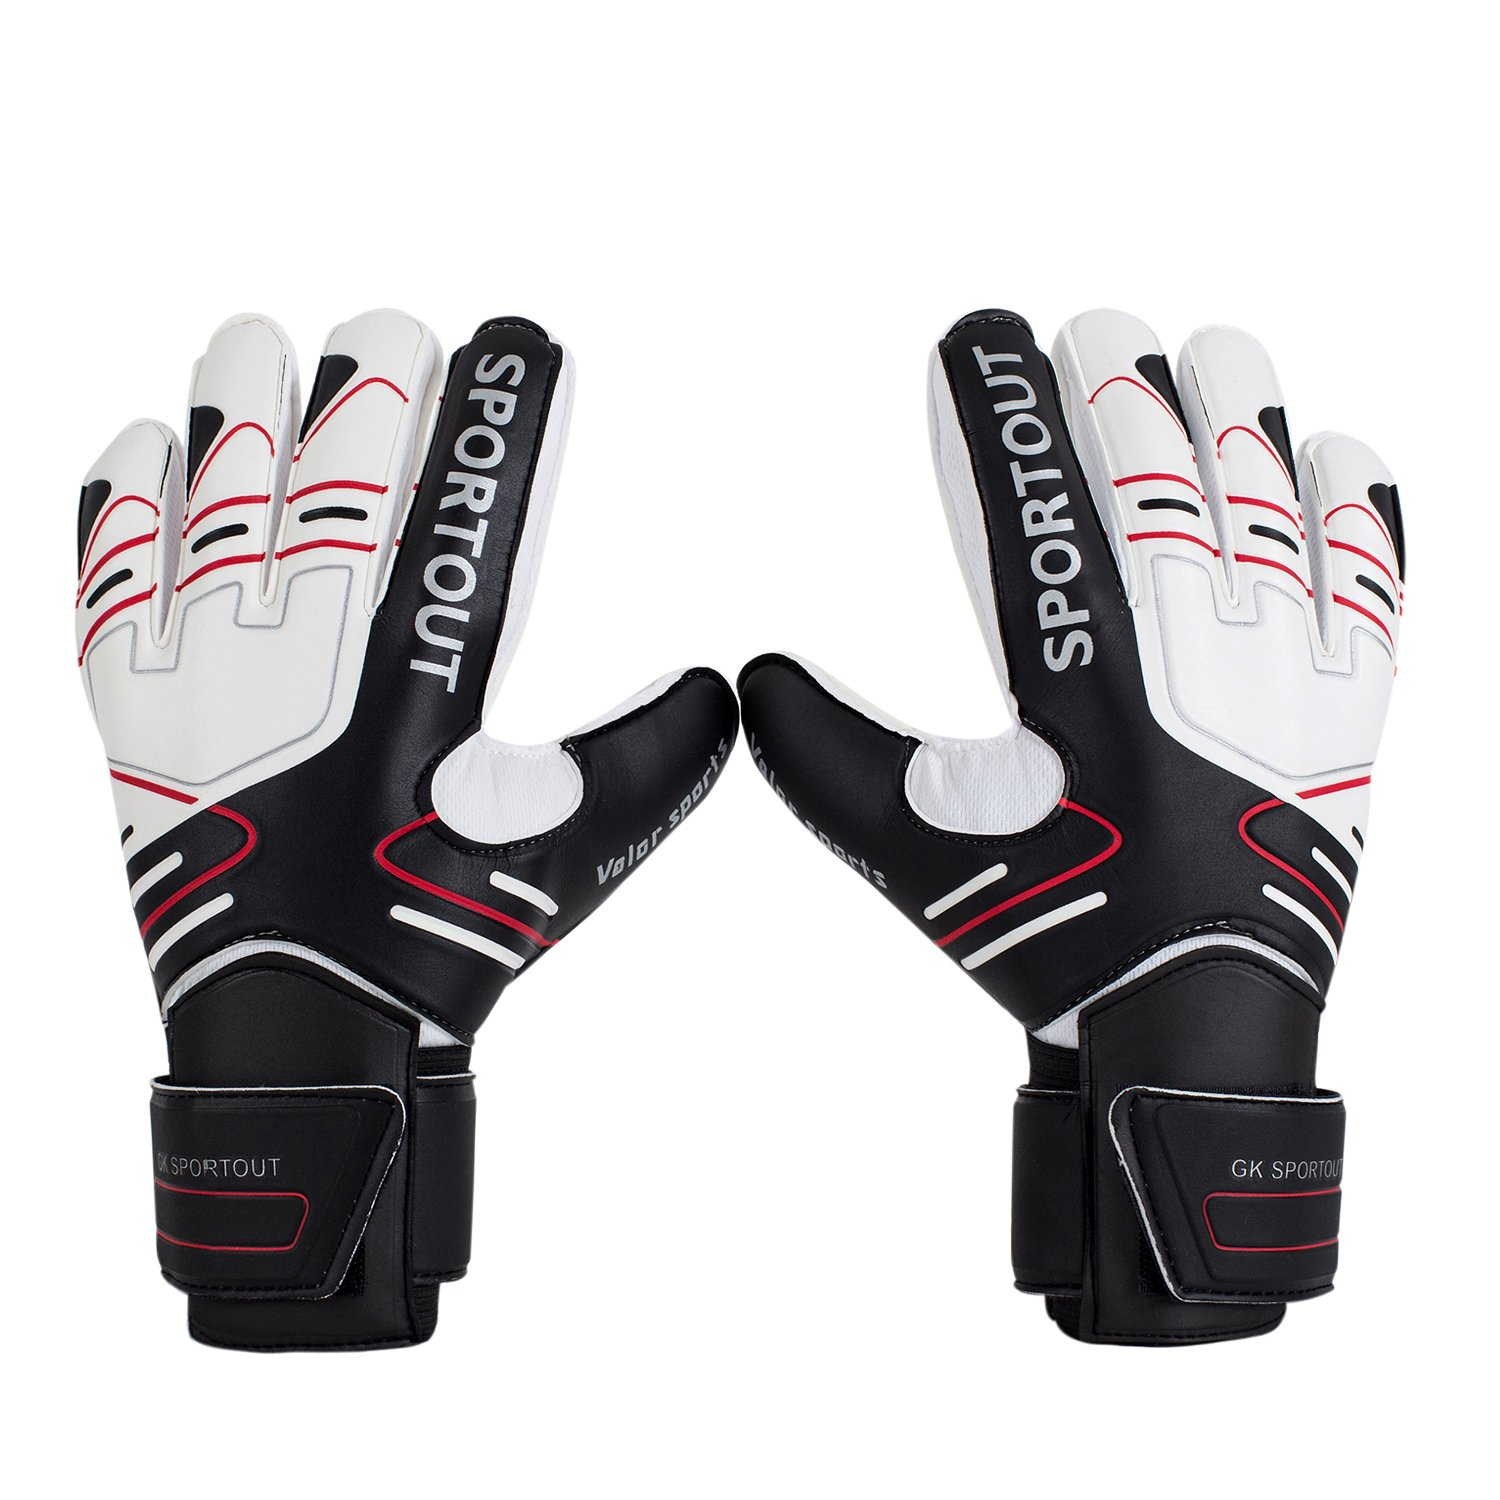 Youth&Adult Goalie Goalkeeper Gloves,Strong Grip for The Toughest Saves,  With Finger Spines to Give Splendid Protection to Prevent Injuries:  Amazon.co.uk: ...